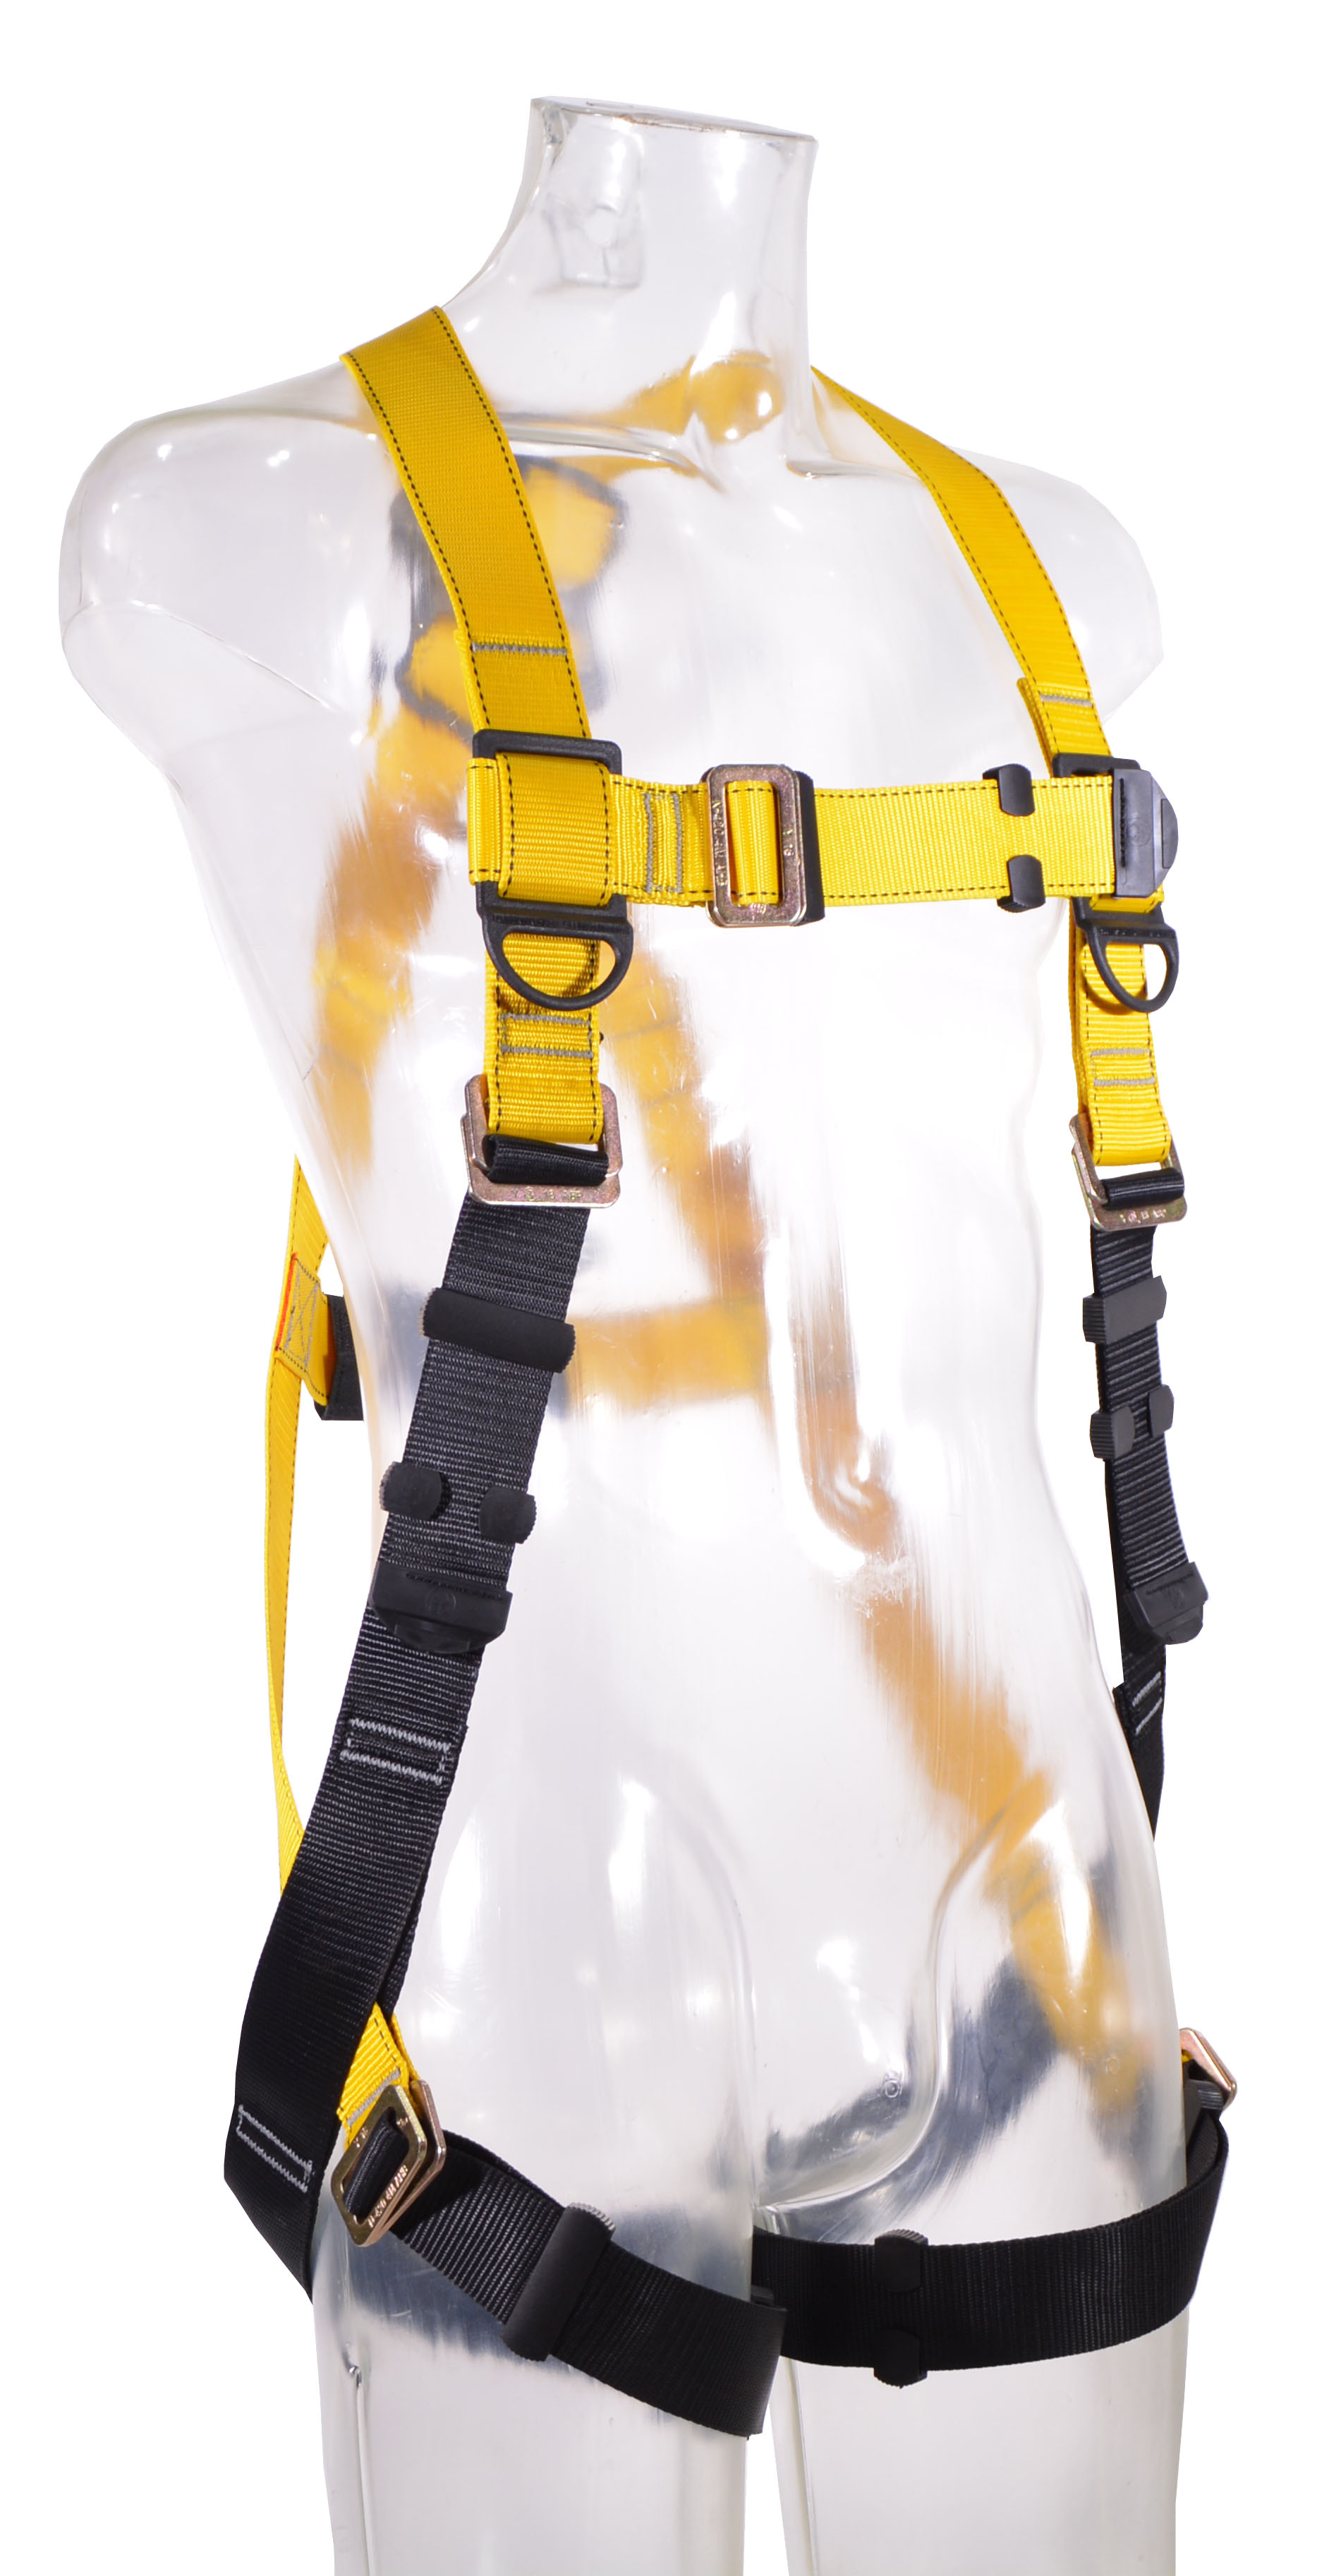 Guardian Series 1 Full-Body Harness, Pass-Through Chest and Legs, Front